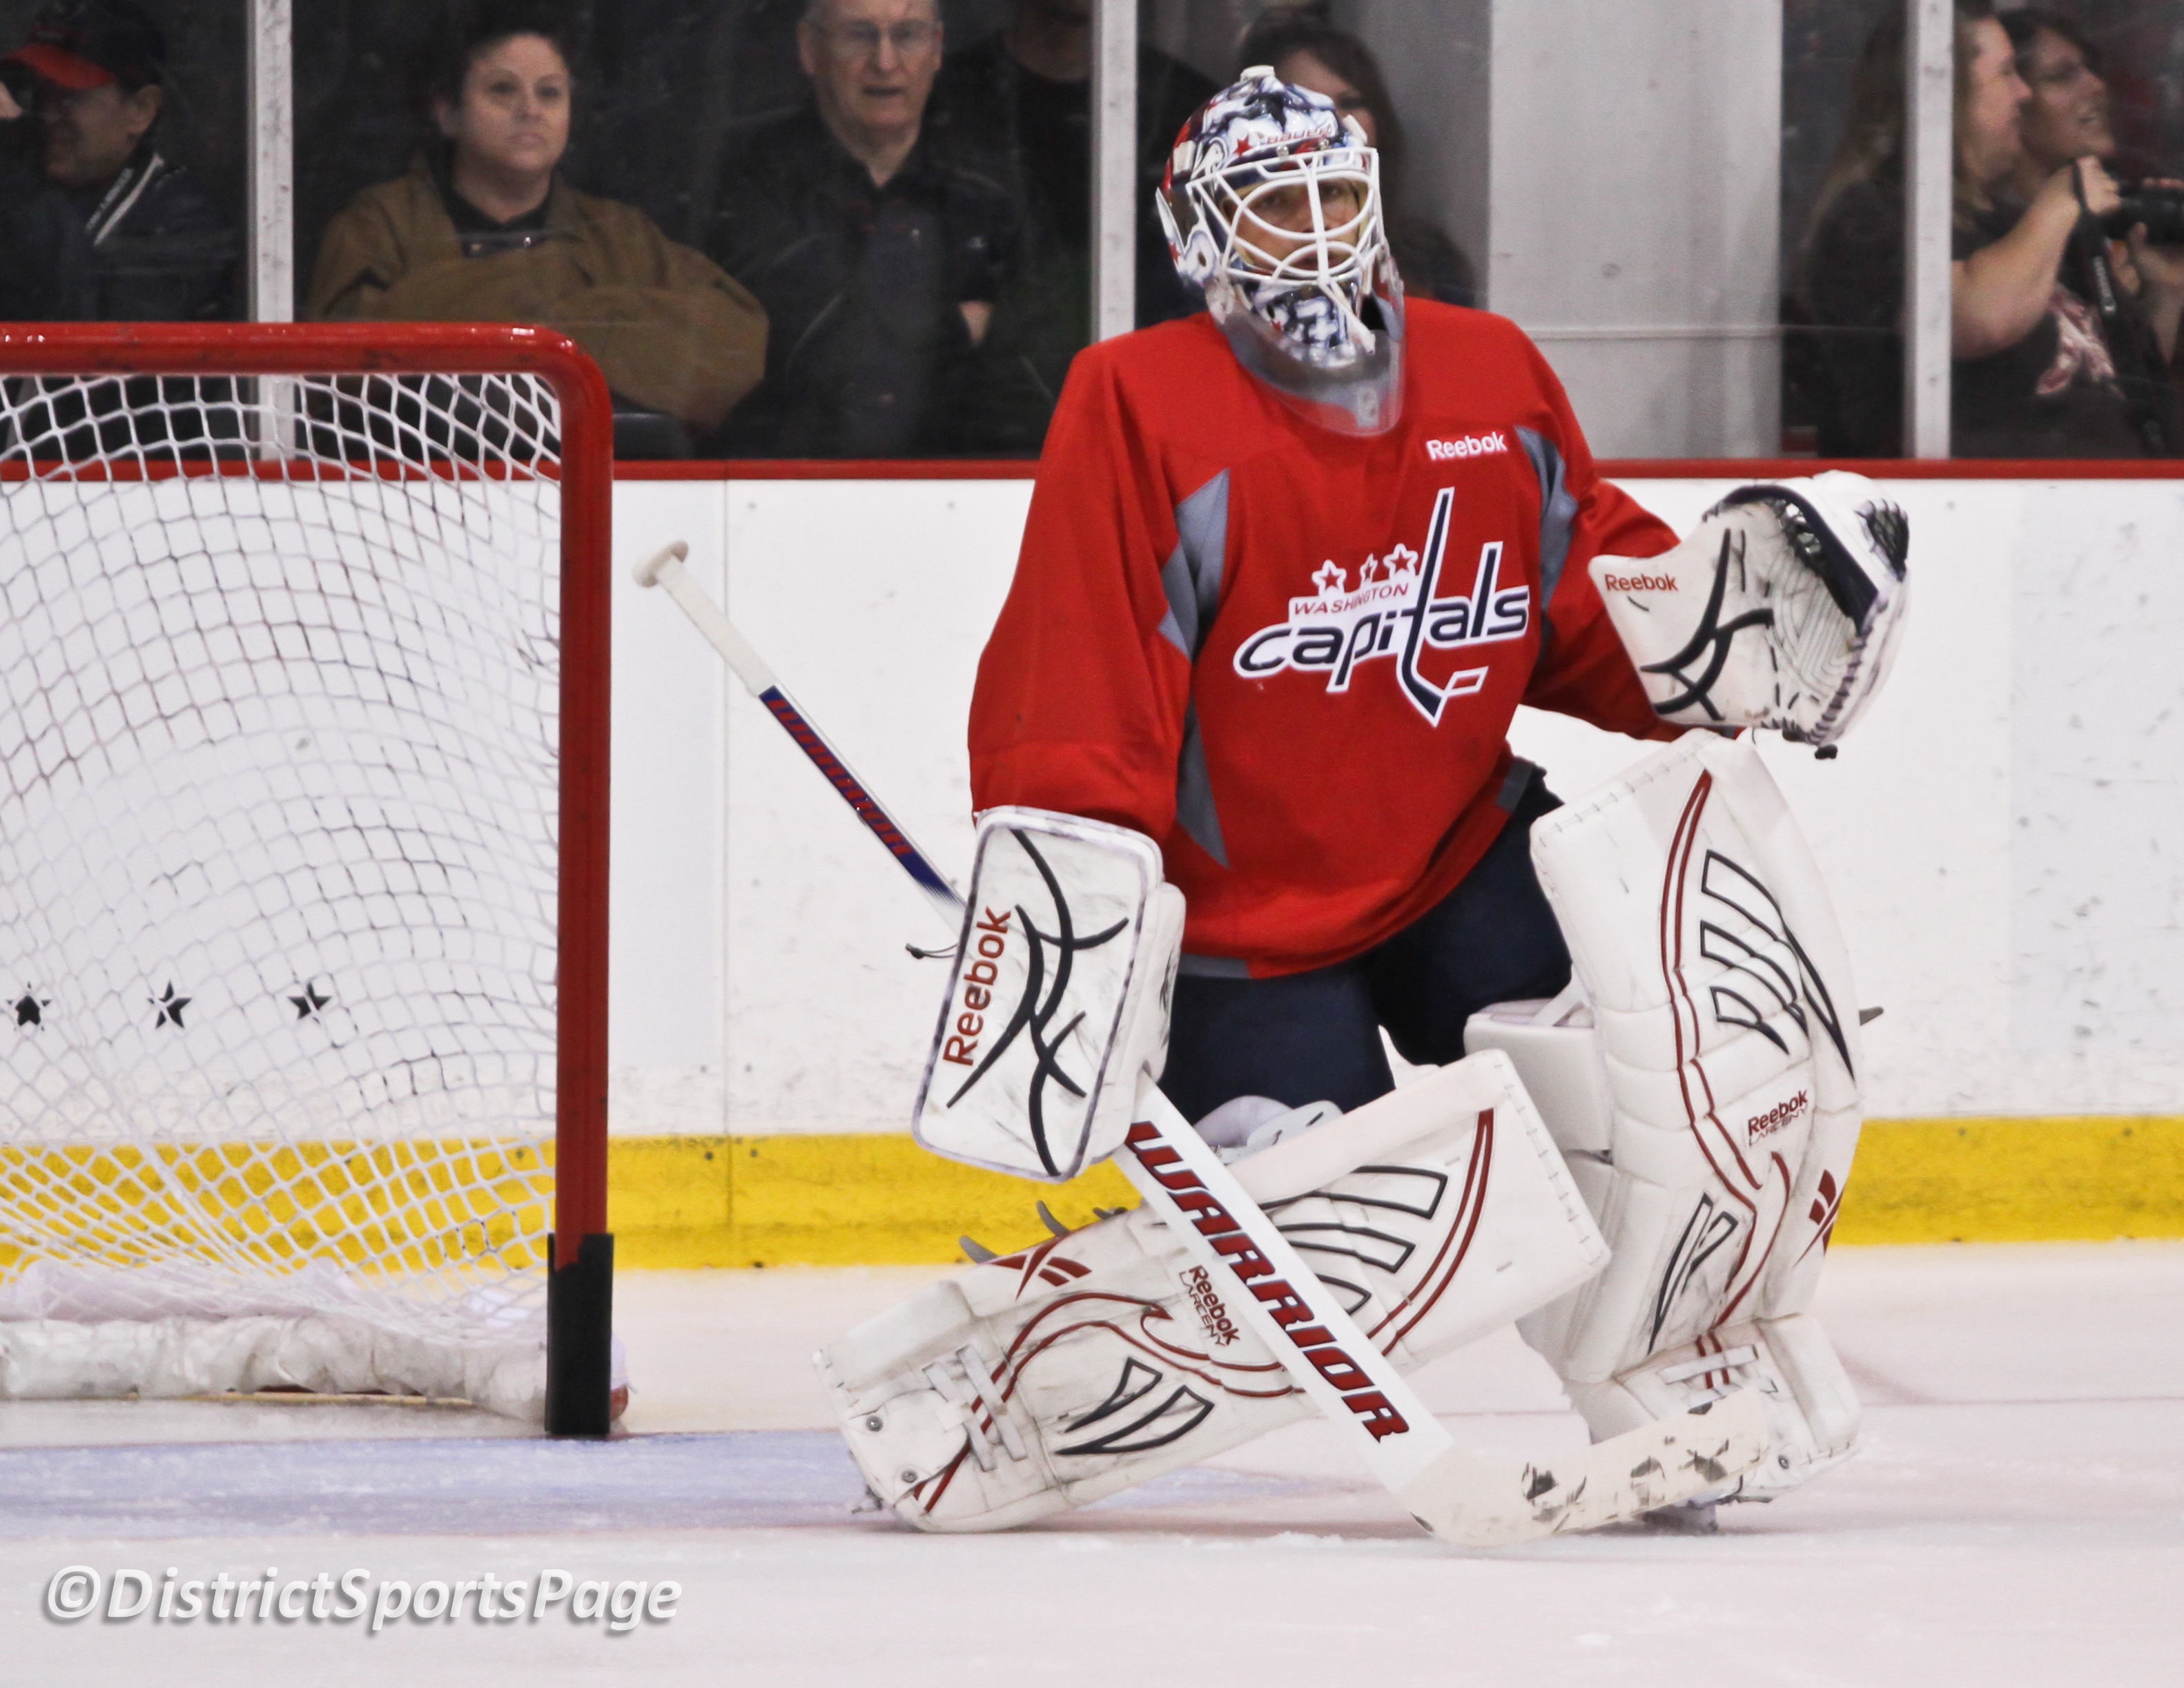 Washington Capitals Game 74 Re Cap Goalie Controversy Brewing After Strong Holtby Start In Loss To Flyers